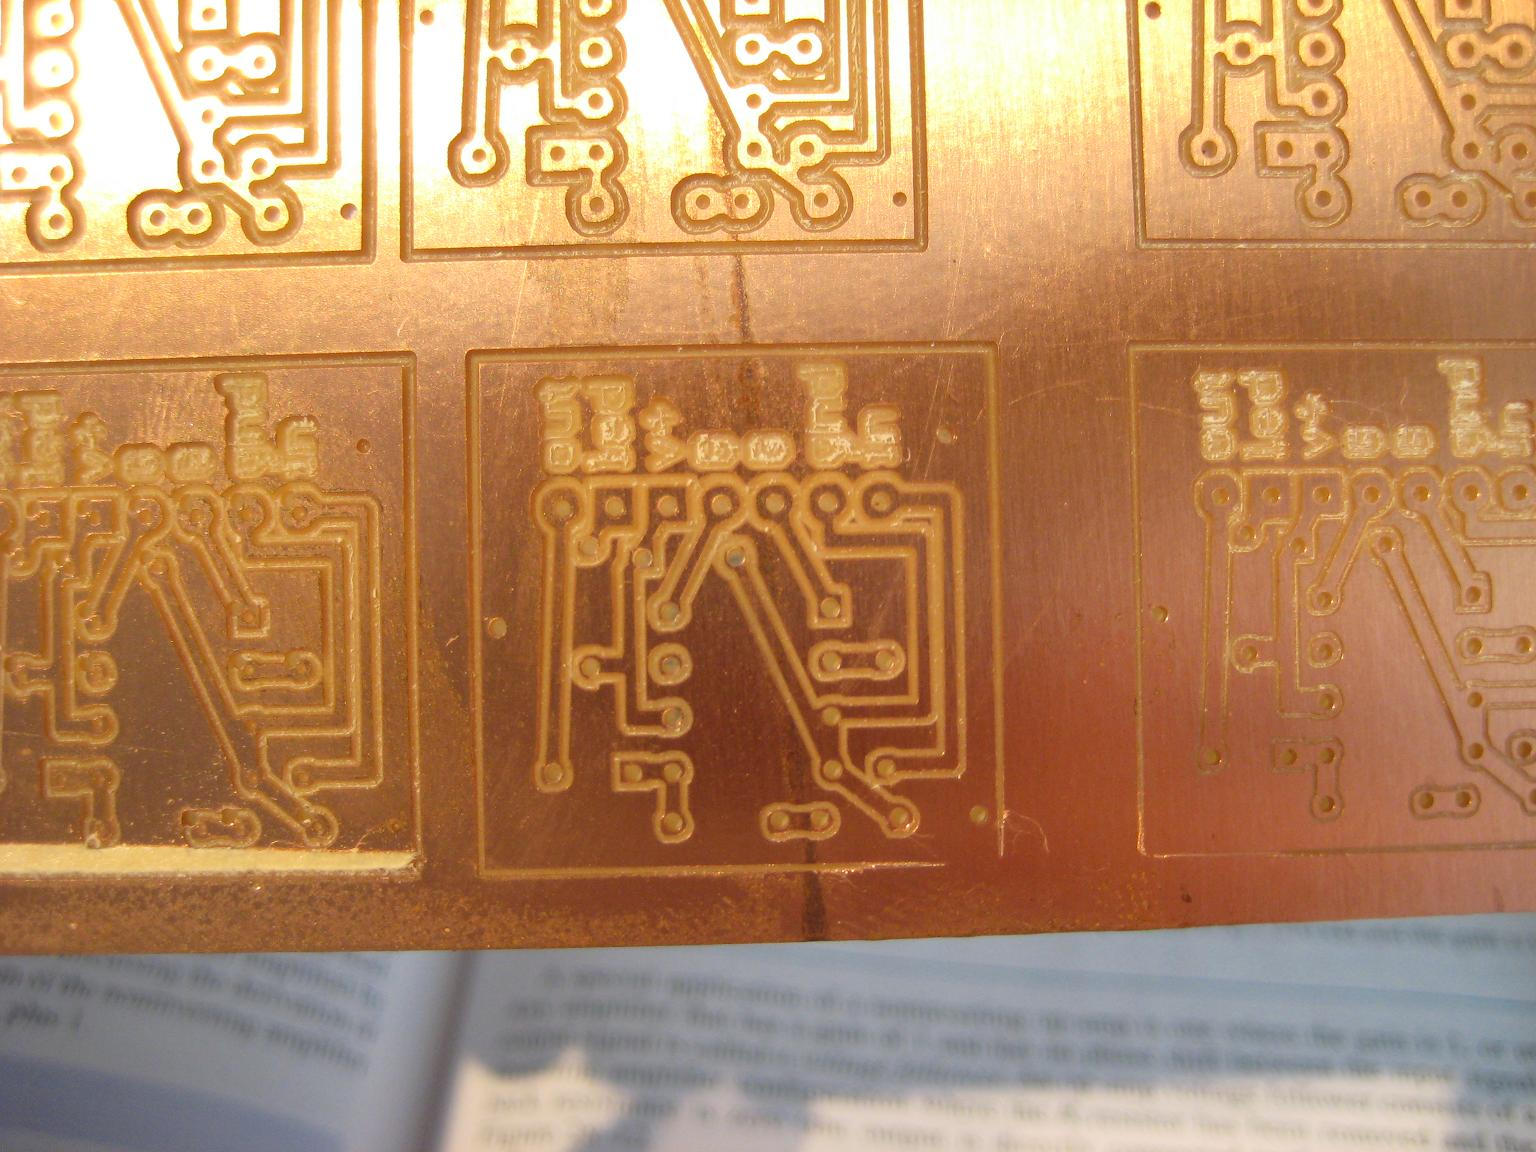 Results From Etching A Circuit Board Eagle Pcb Gcode Micro Cnc How To Etch Boards Once I Figure Out Edit Video In Ubuntu Ill Have Step By Of Use With